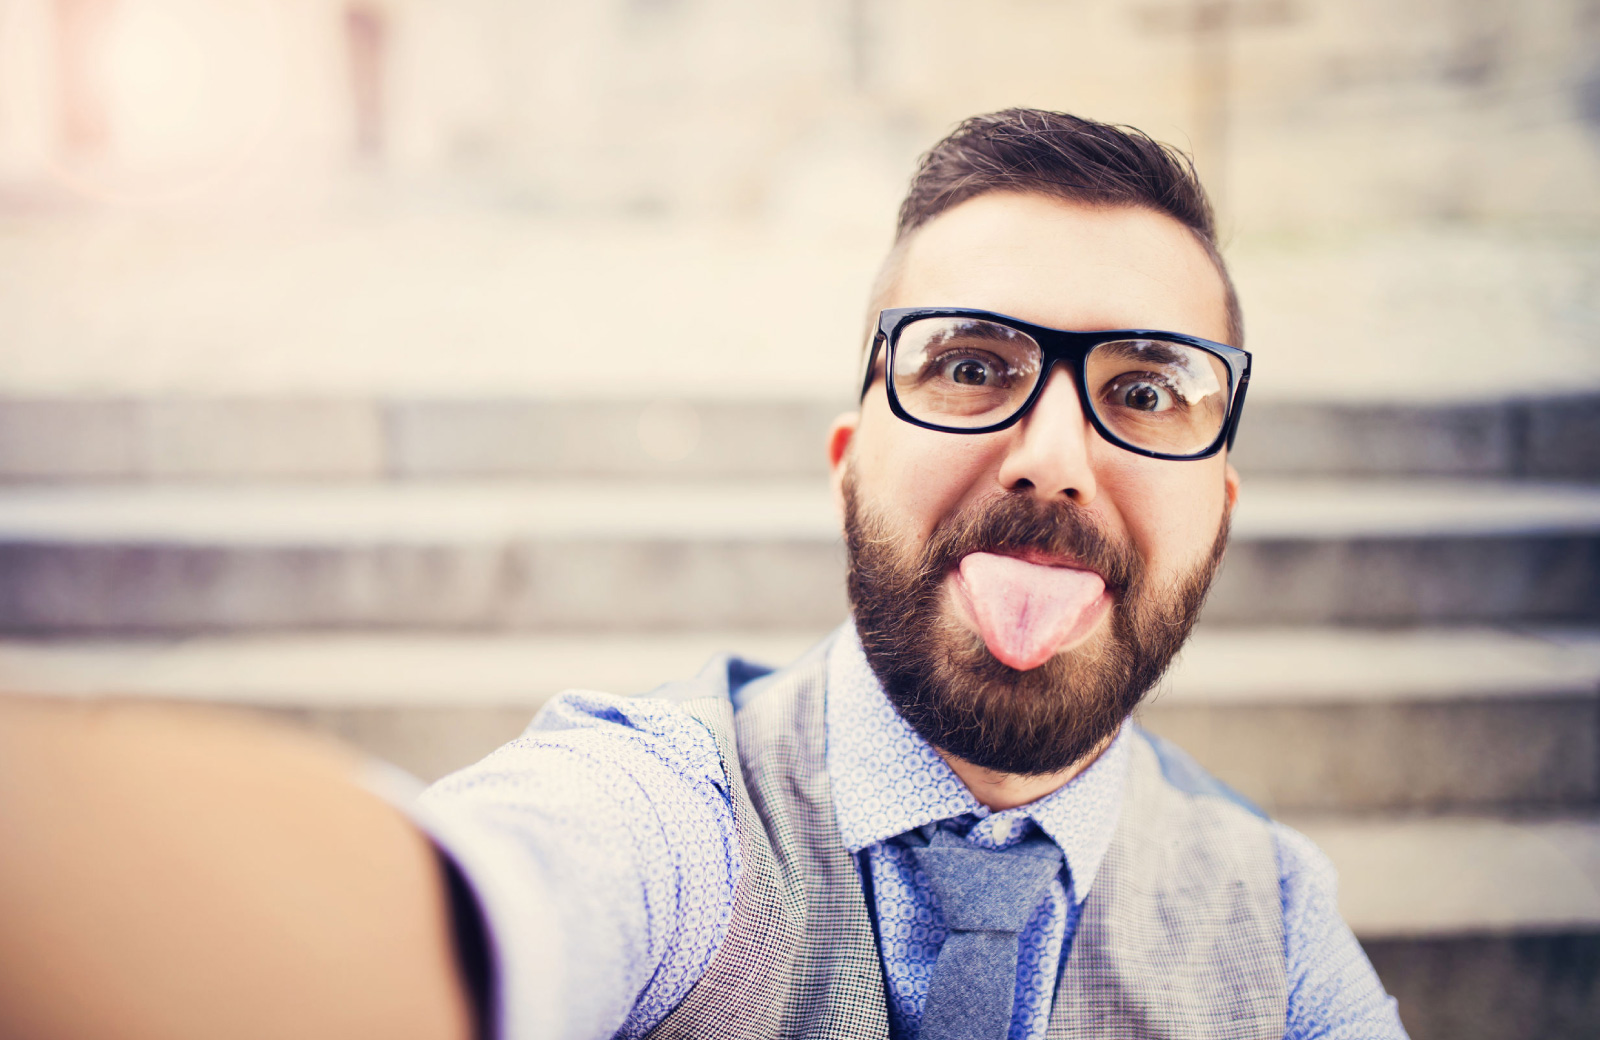 man with glasses and beard taking a selfie altana glendale